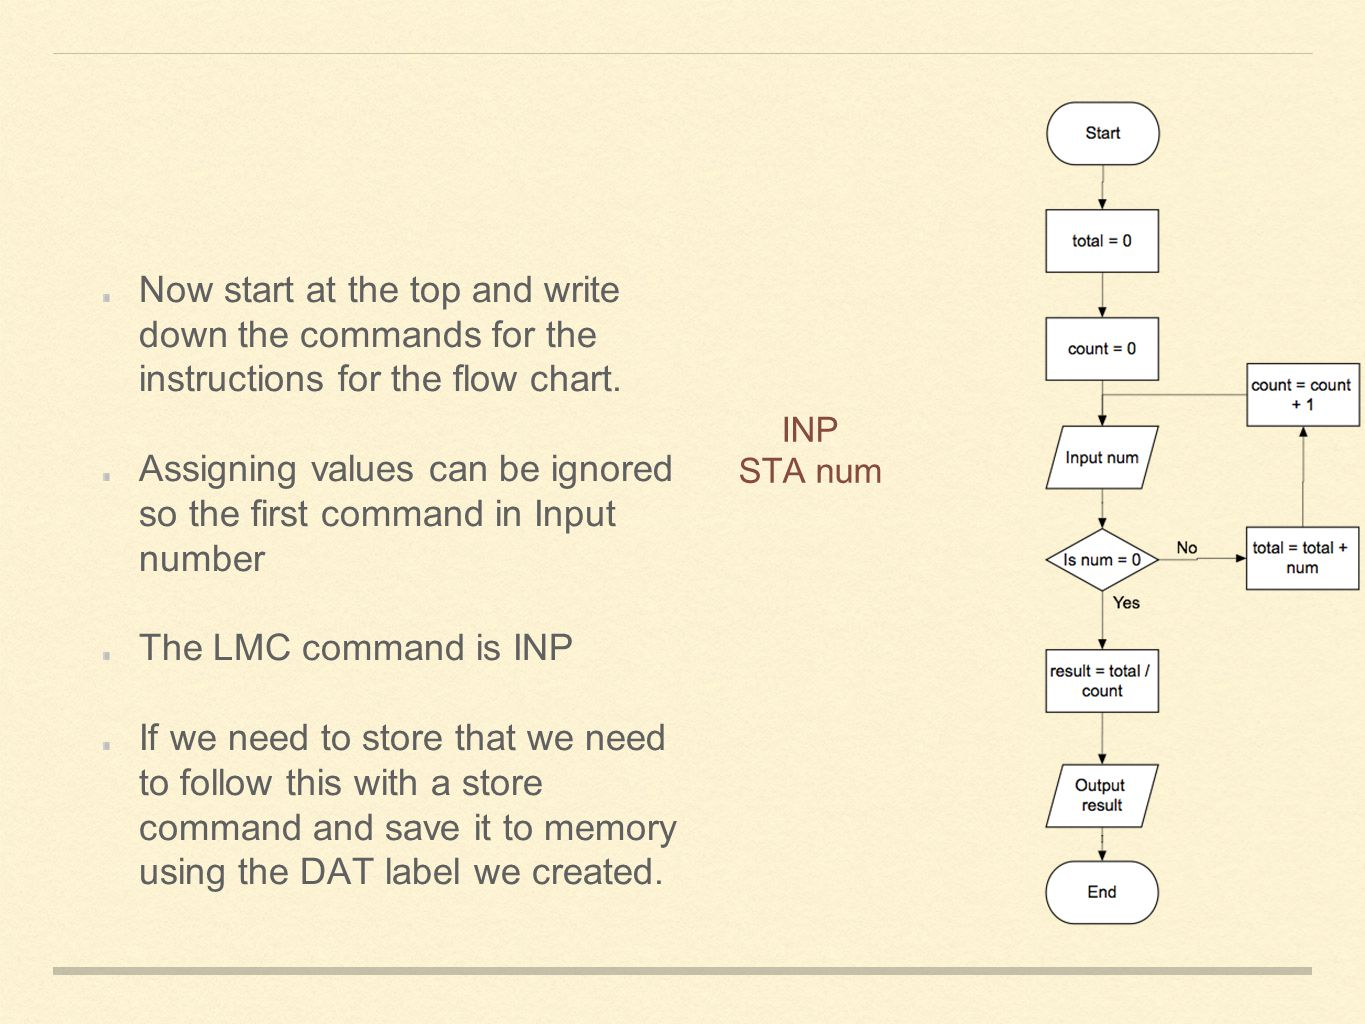 Now start at the top and write down the commands for the instructions for the flow chart. Assigning values can be ignored so the first command in Inpu